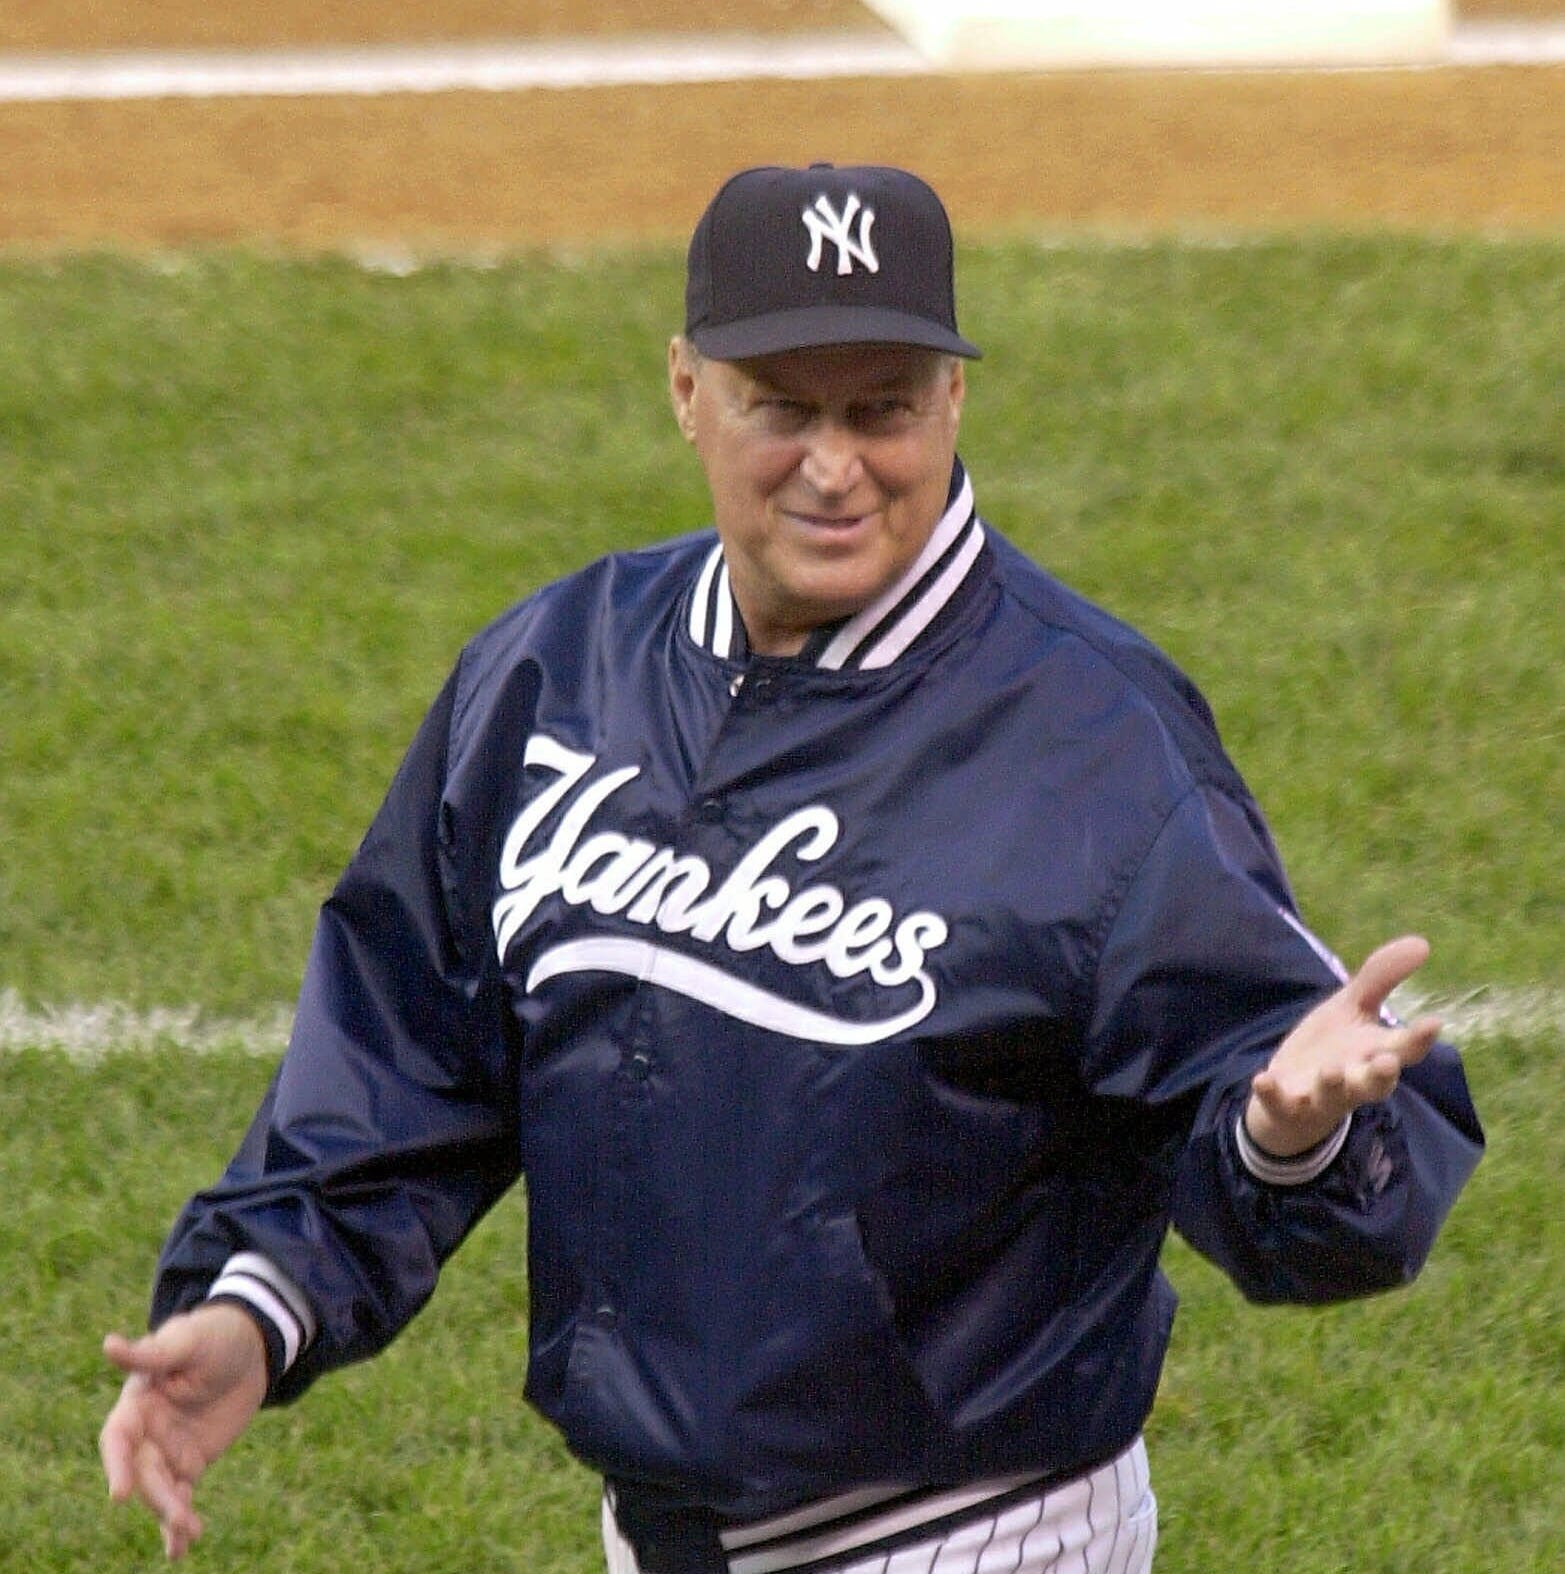 Mel Stottlemyre, former New York Yankees and Mets pitching coach, dead at 77